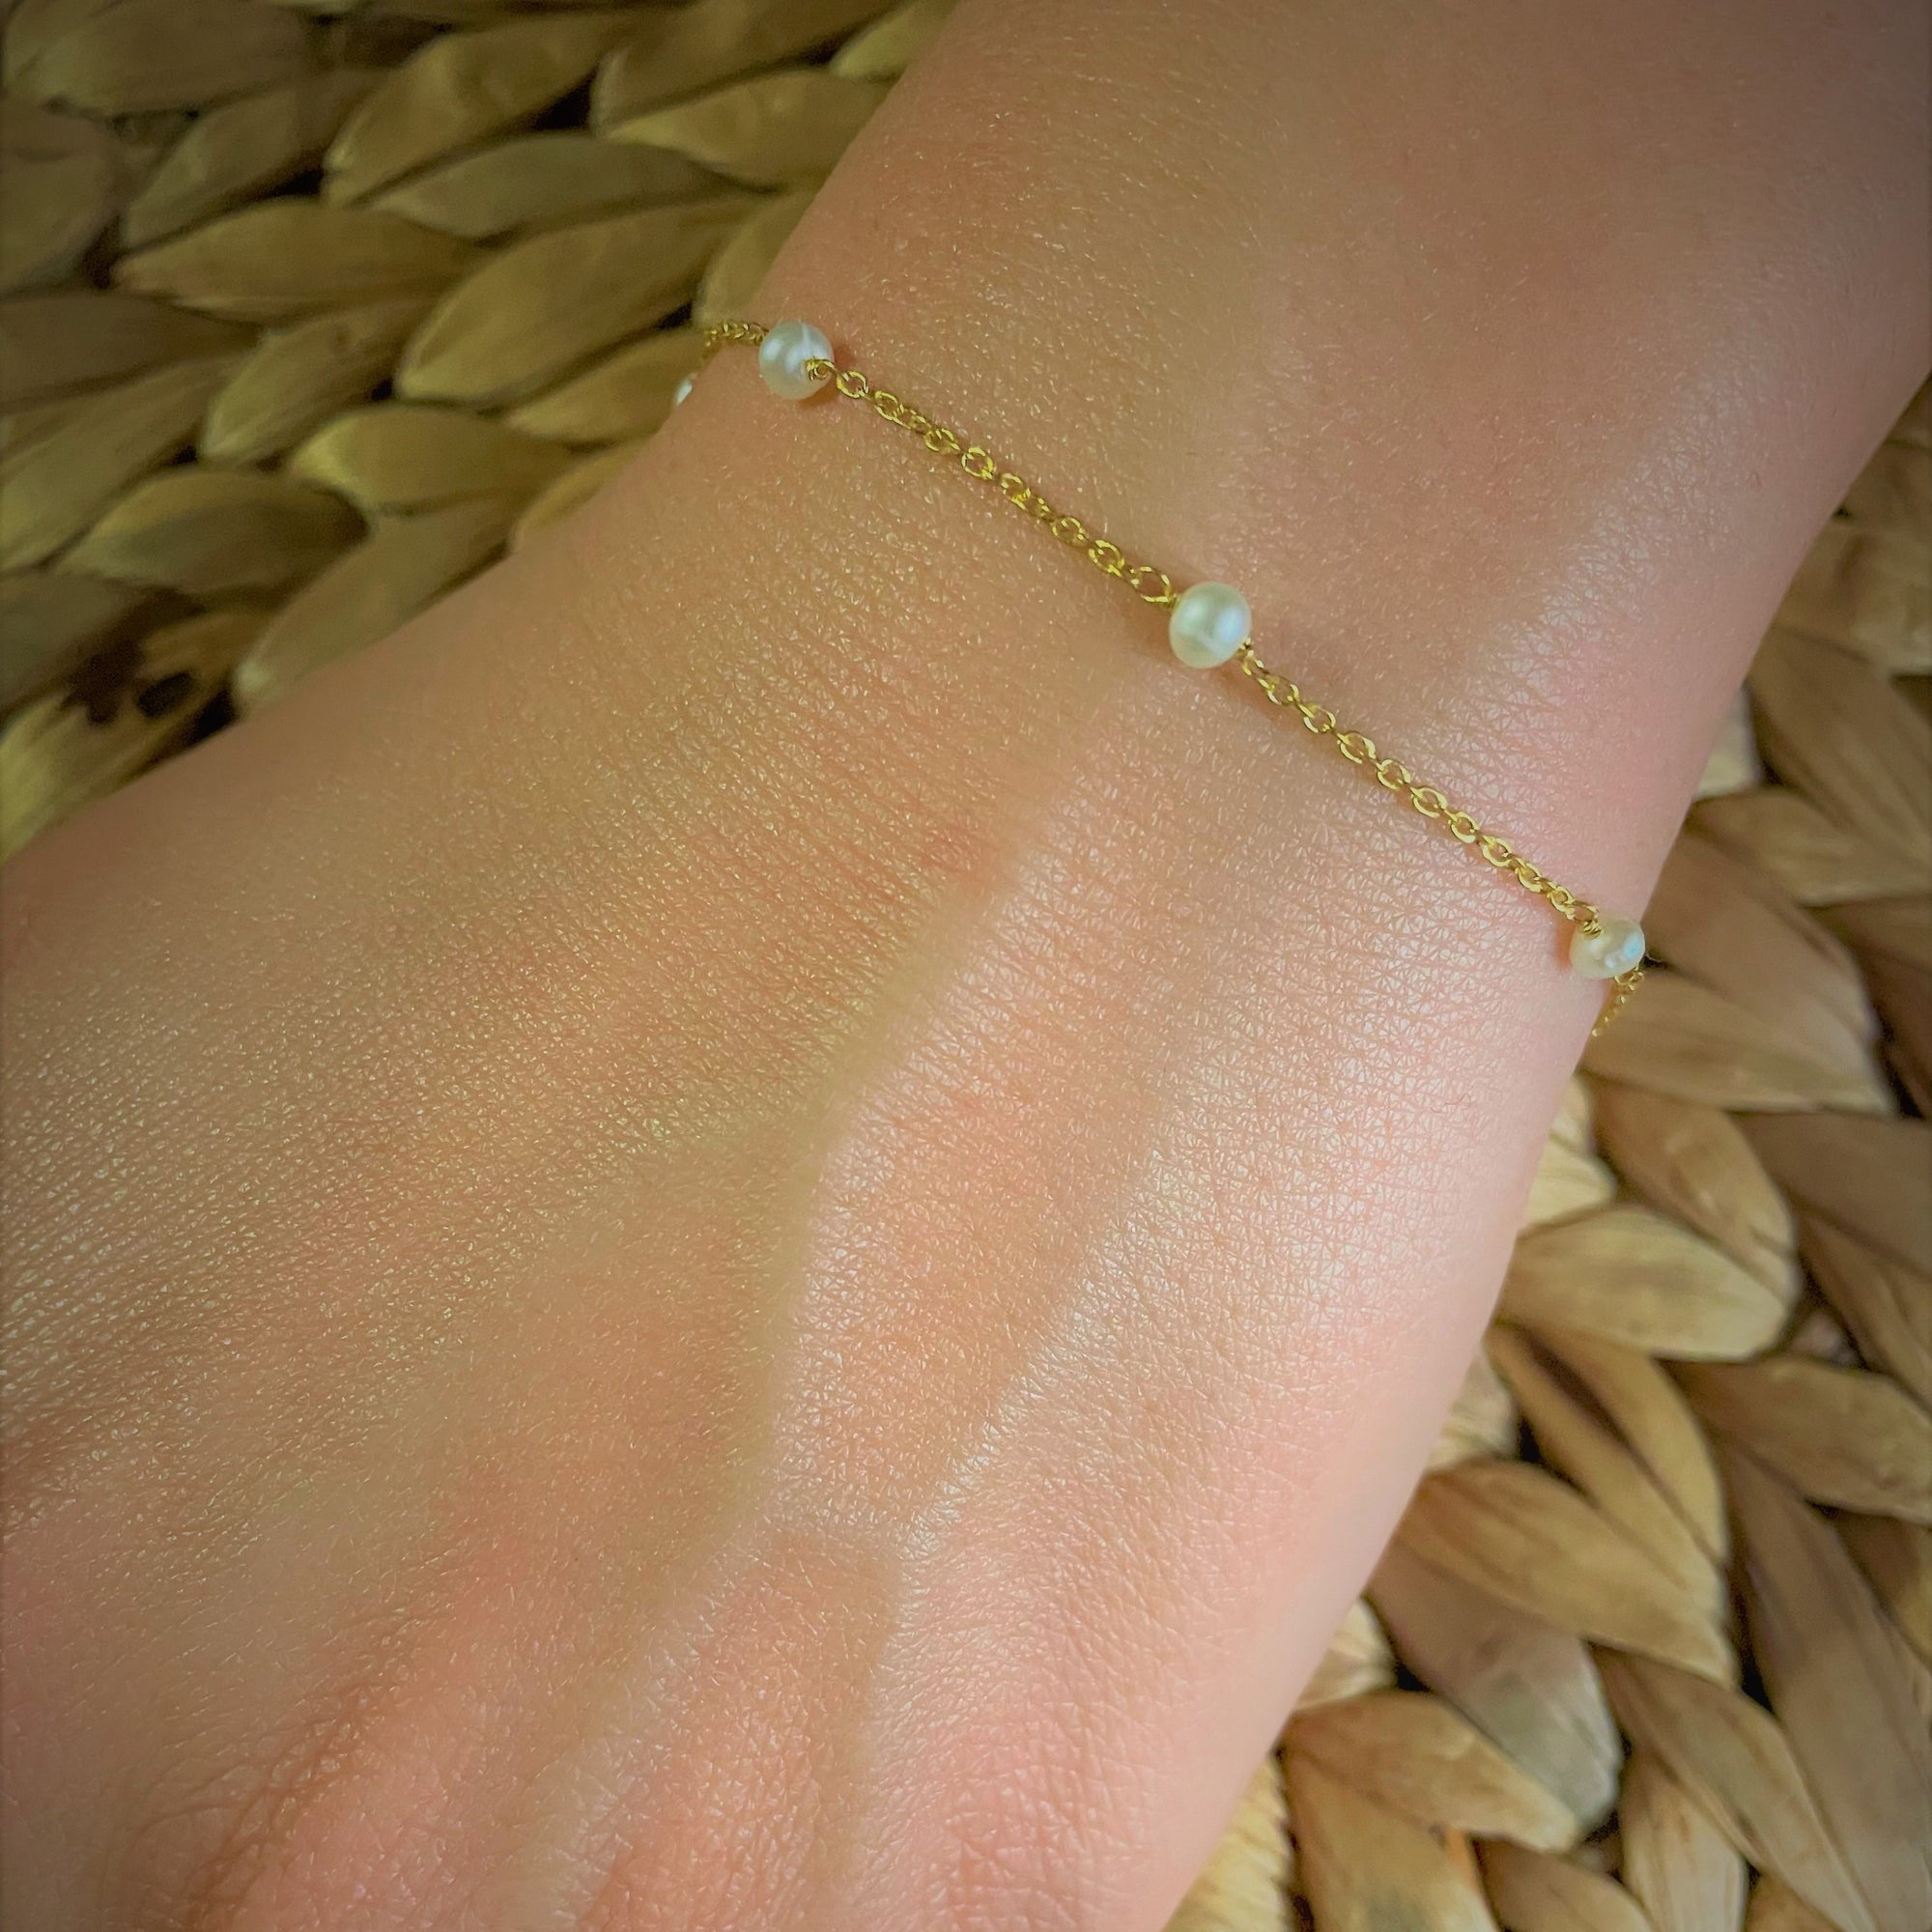 Pearl and Chain Bracelet  - Delicate handcrafted Katy Valentine - Shop with Sparkle & The Sinner